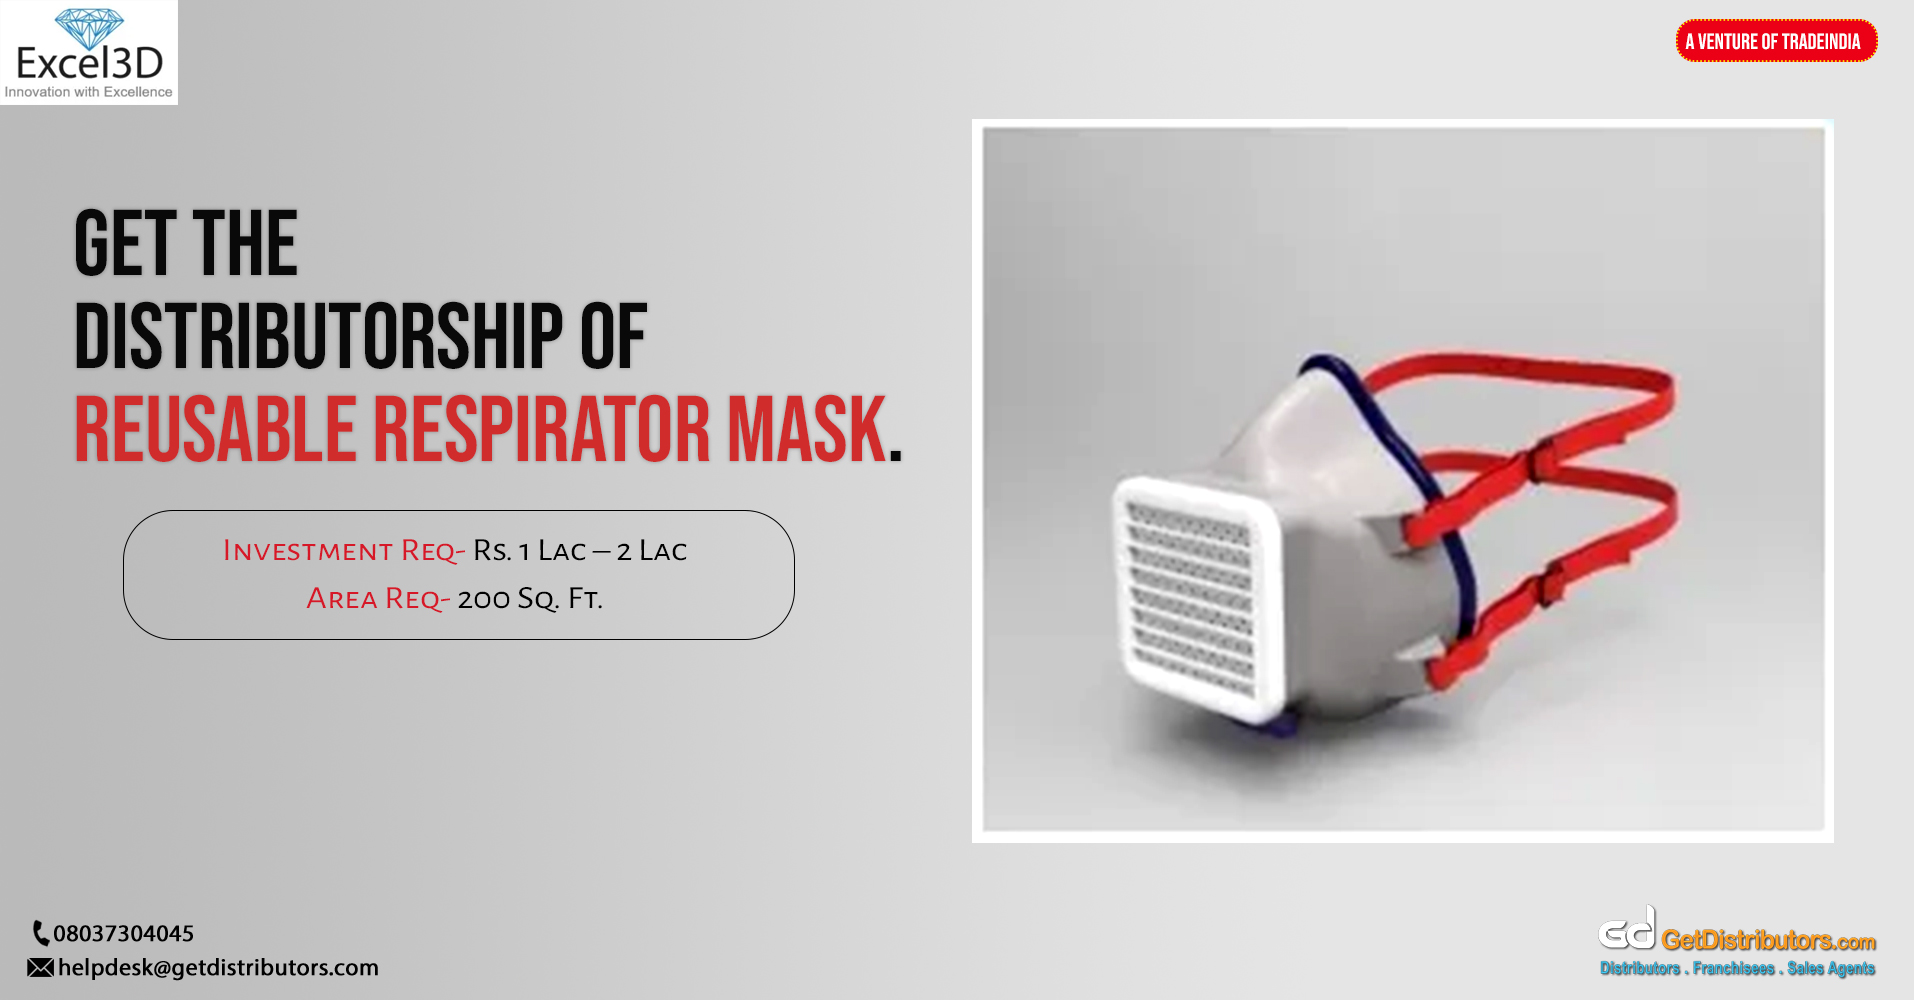 Top grade reusable respirator mask for distribution